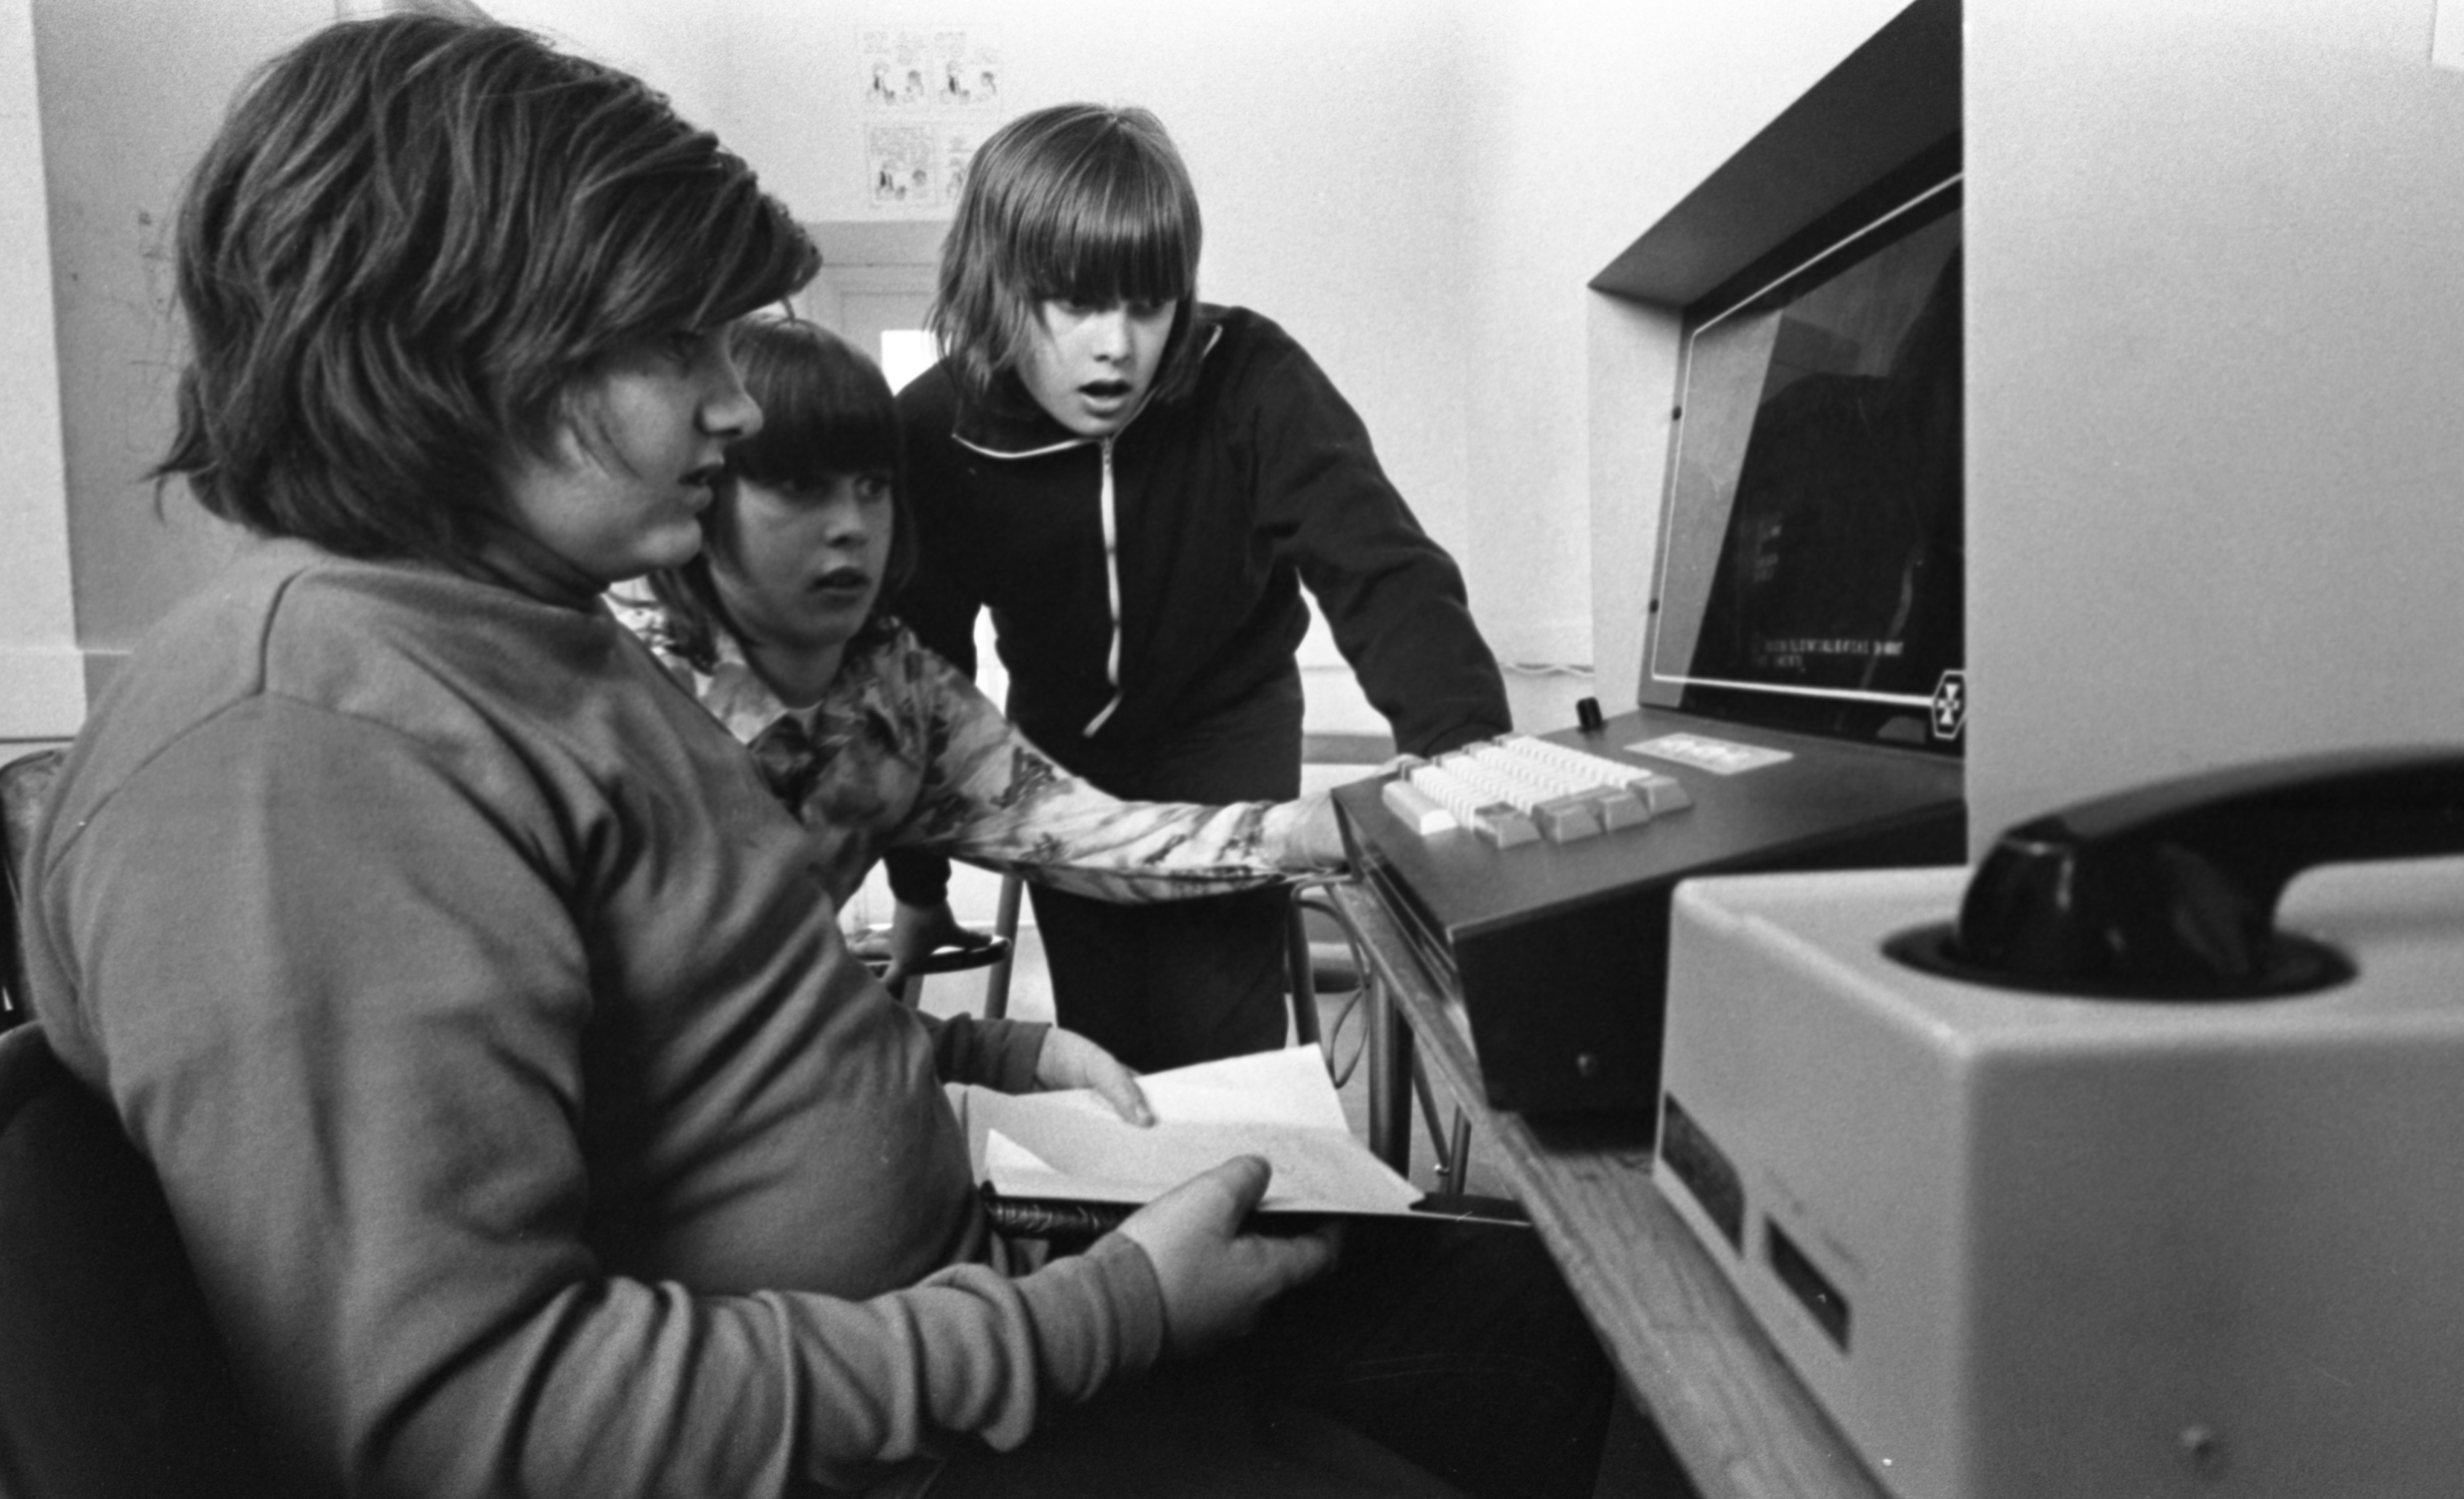 Middle Schoolers Jerry Bush, John Mayleben, & Jim Mayleben, Attend After-School Computer Class At Community High School, March 1976 image